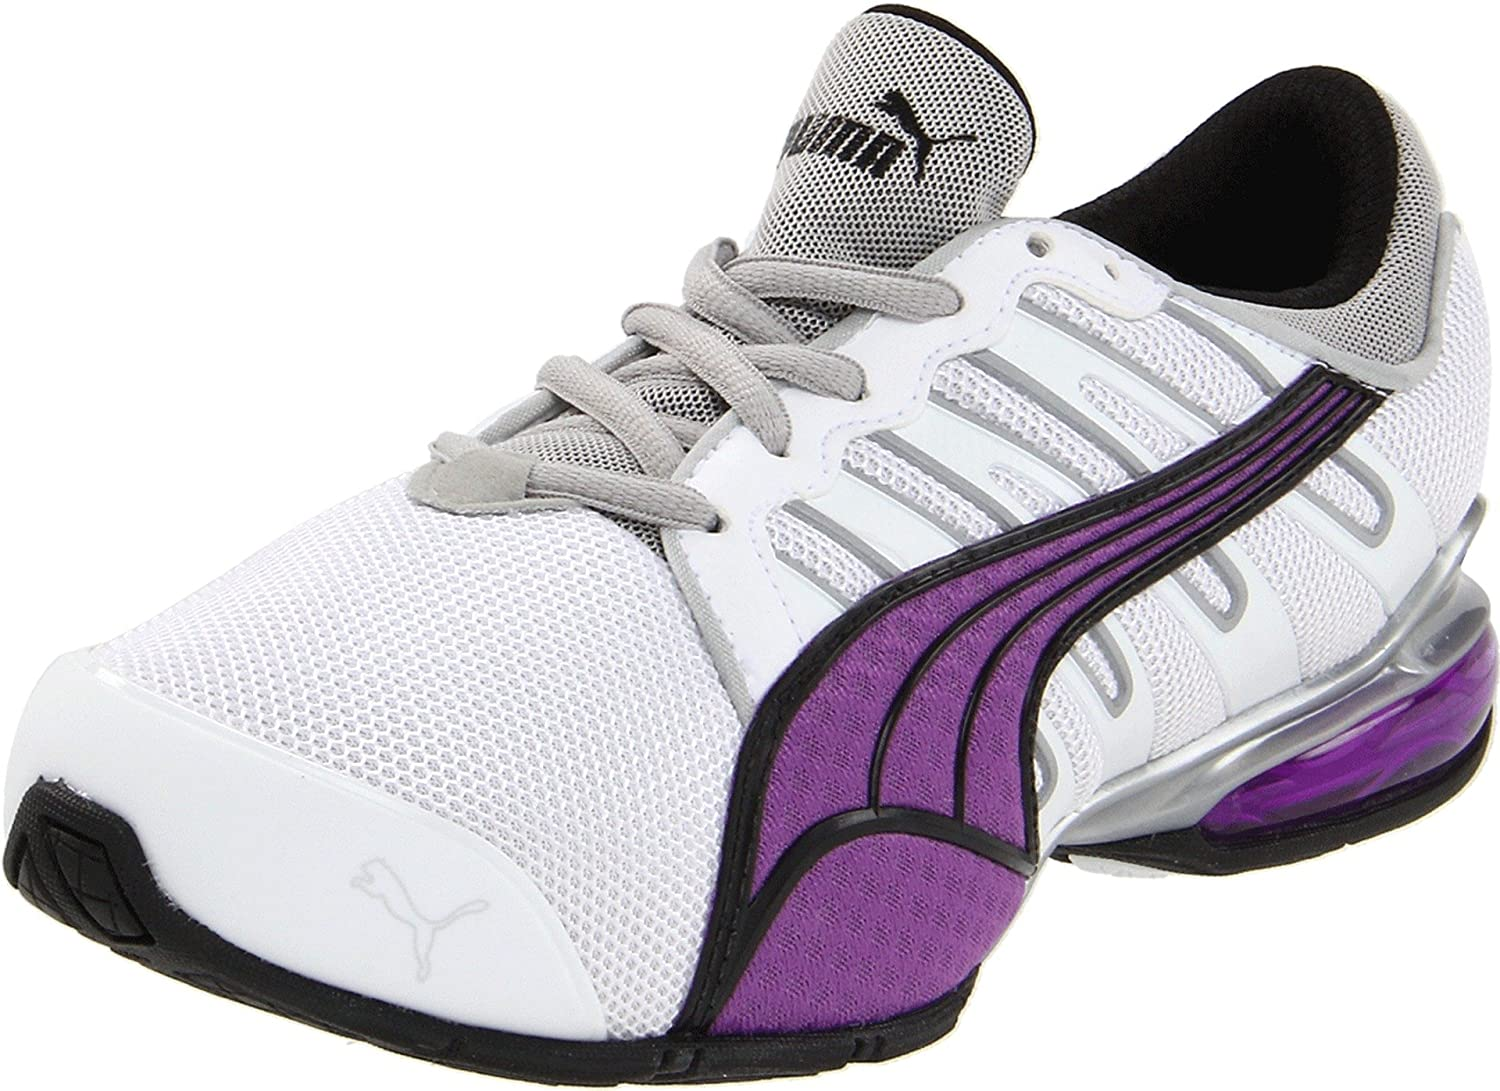 Tennis Puma Voltaic Dama Shoesclub Originalesh Vrn Ofertopia